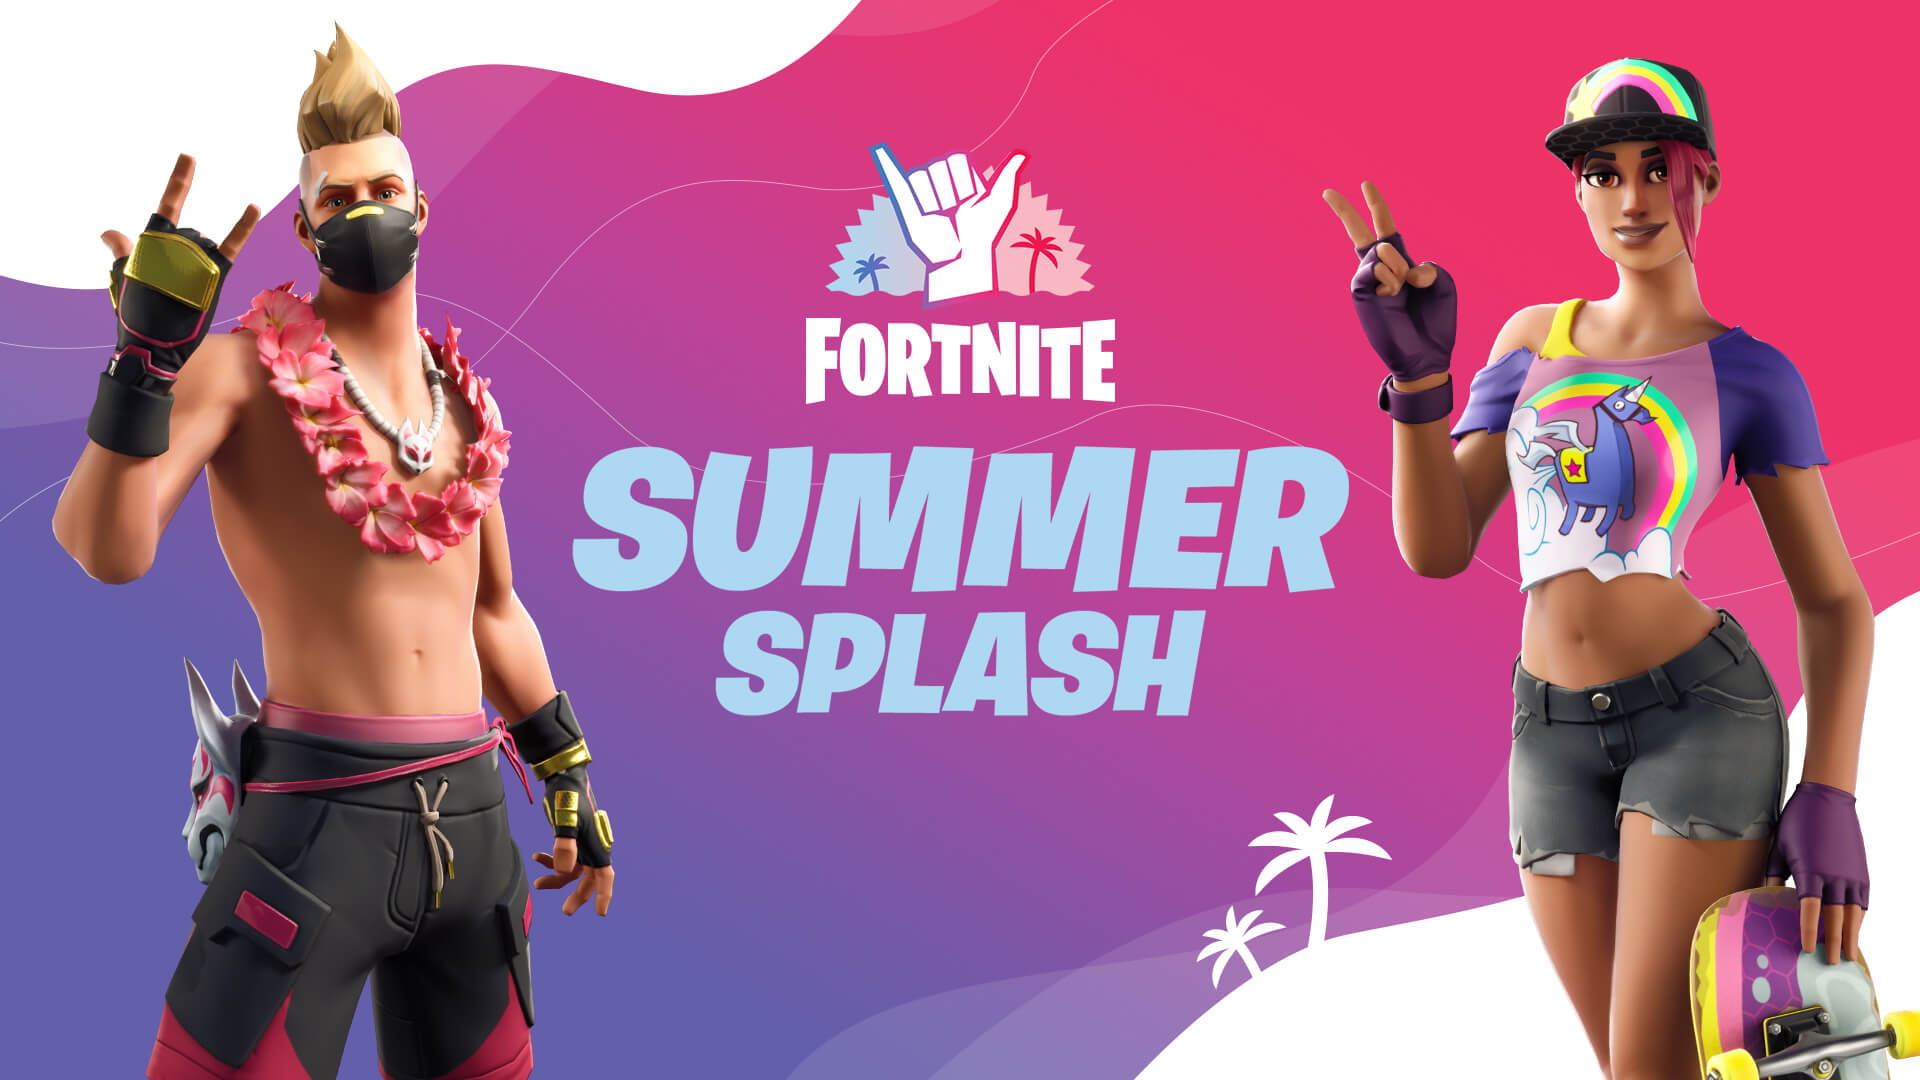 Fortnite Summer Splash 2020